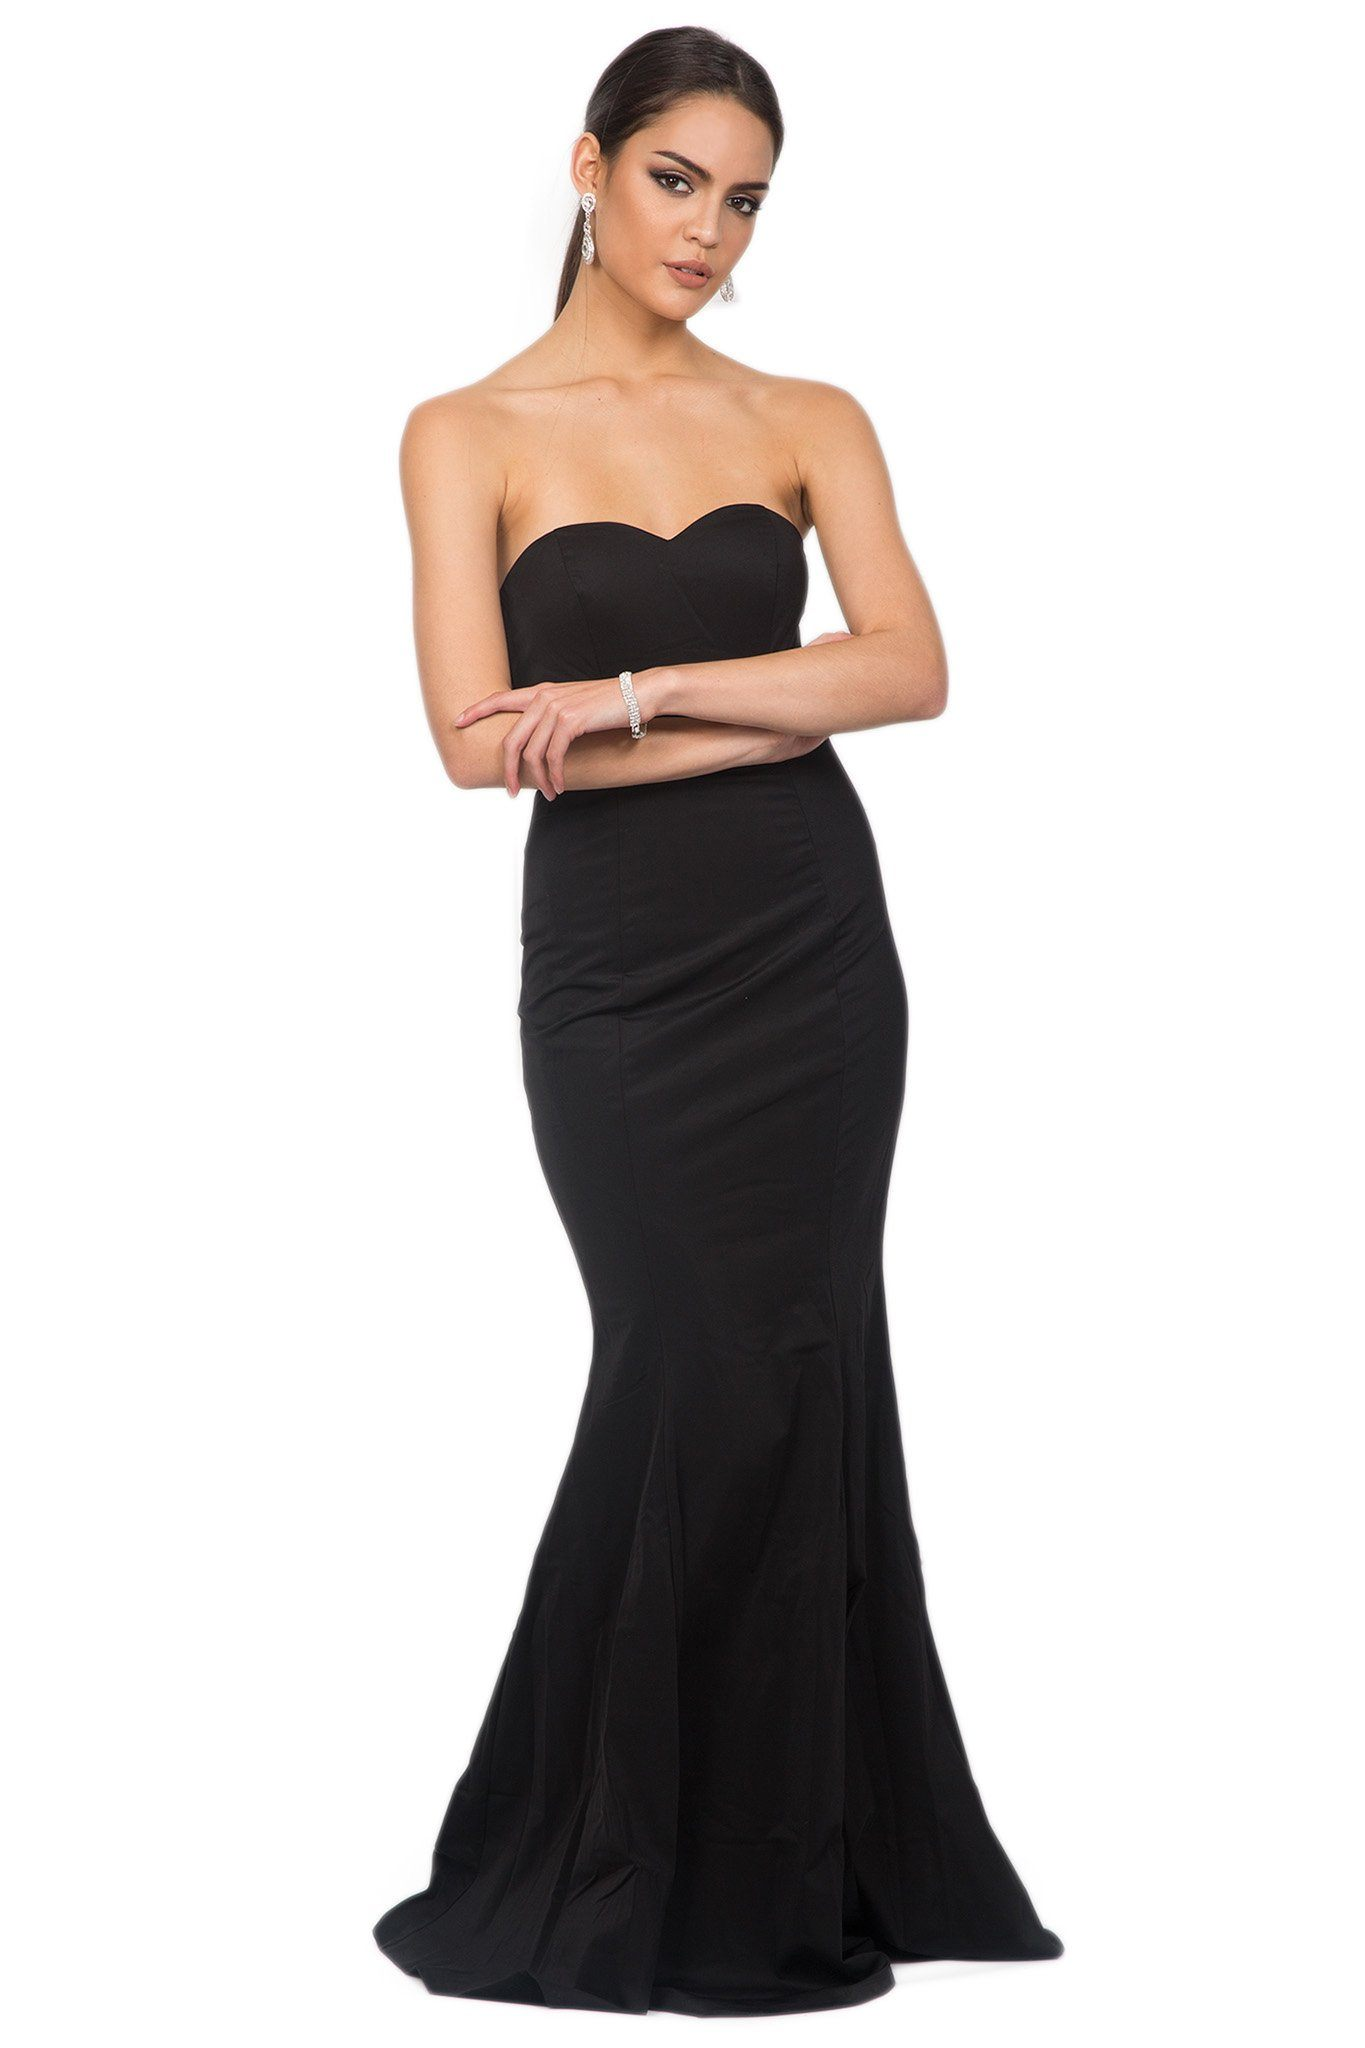 Black strapless sleeveless floor length evening fitted bodycon gown with sweetheart neckline and mermaid tail